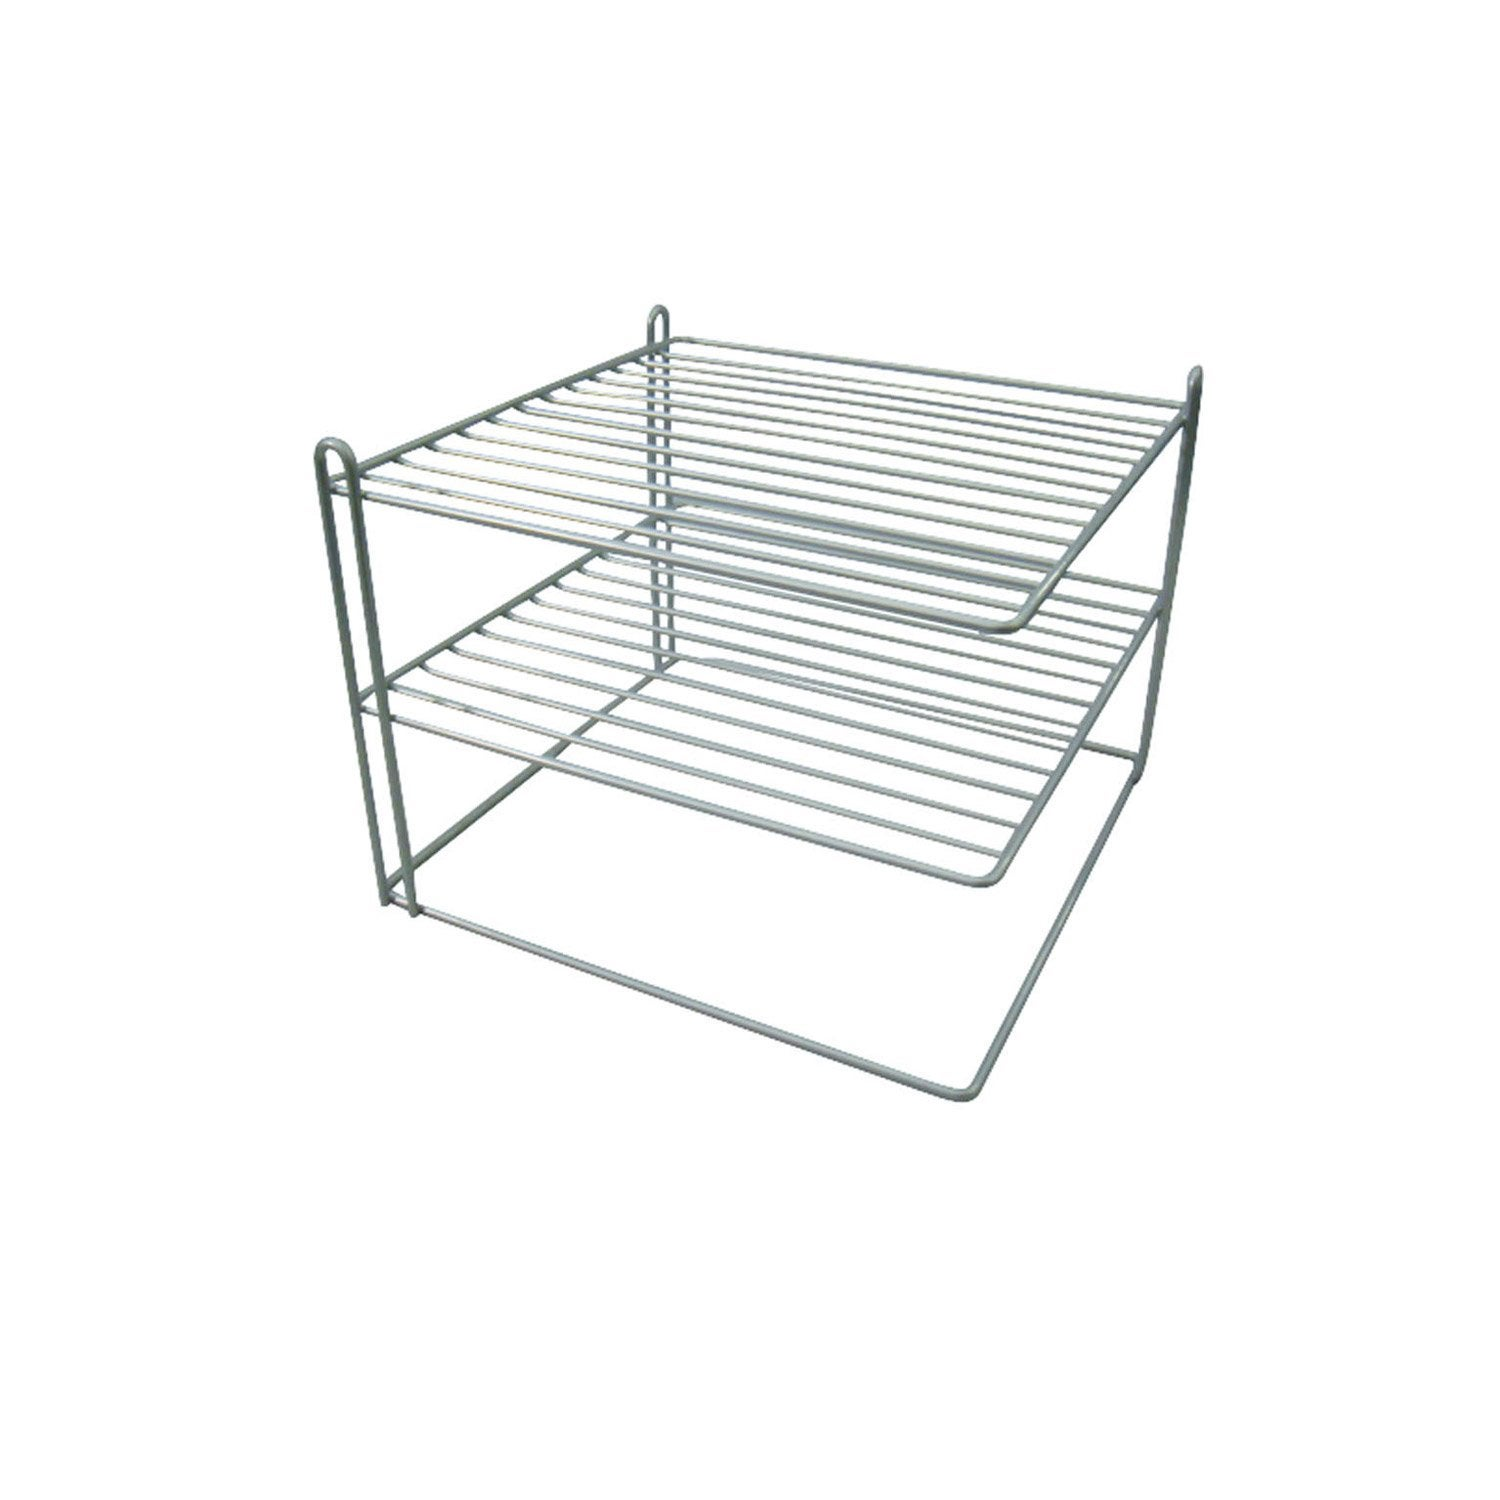 Etag re assiettes 3 niveaux m tal epoxy leroy merlin - Leroy merlin etagere metal ...